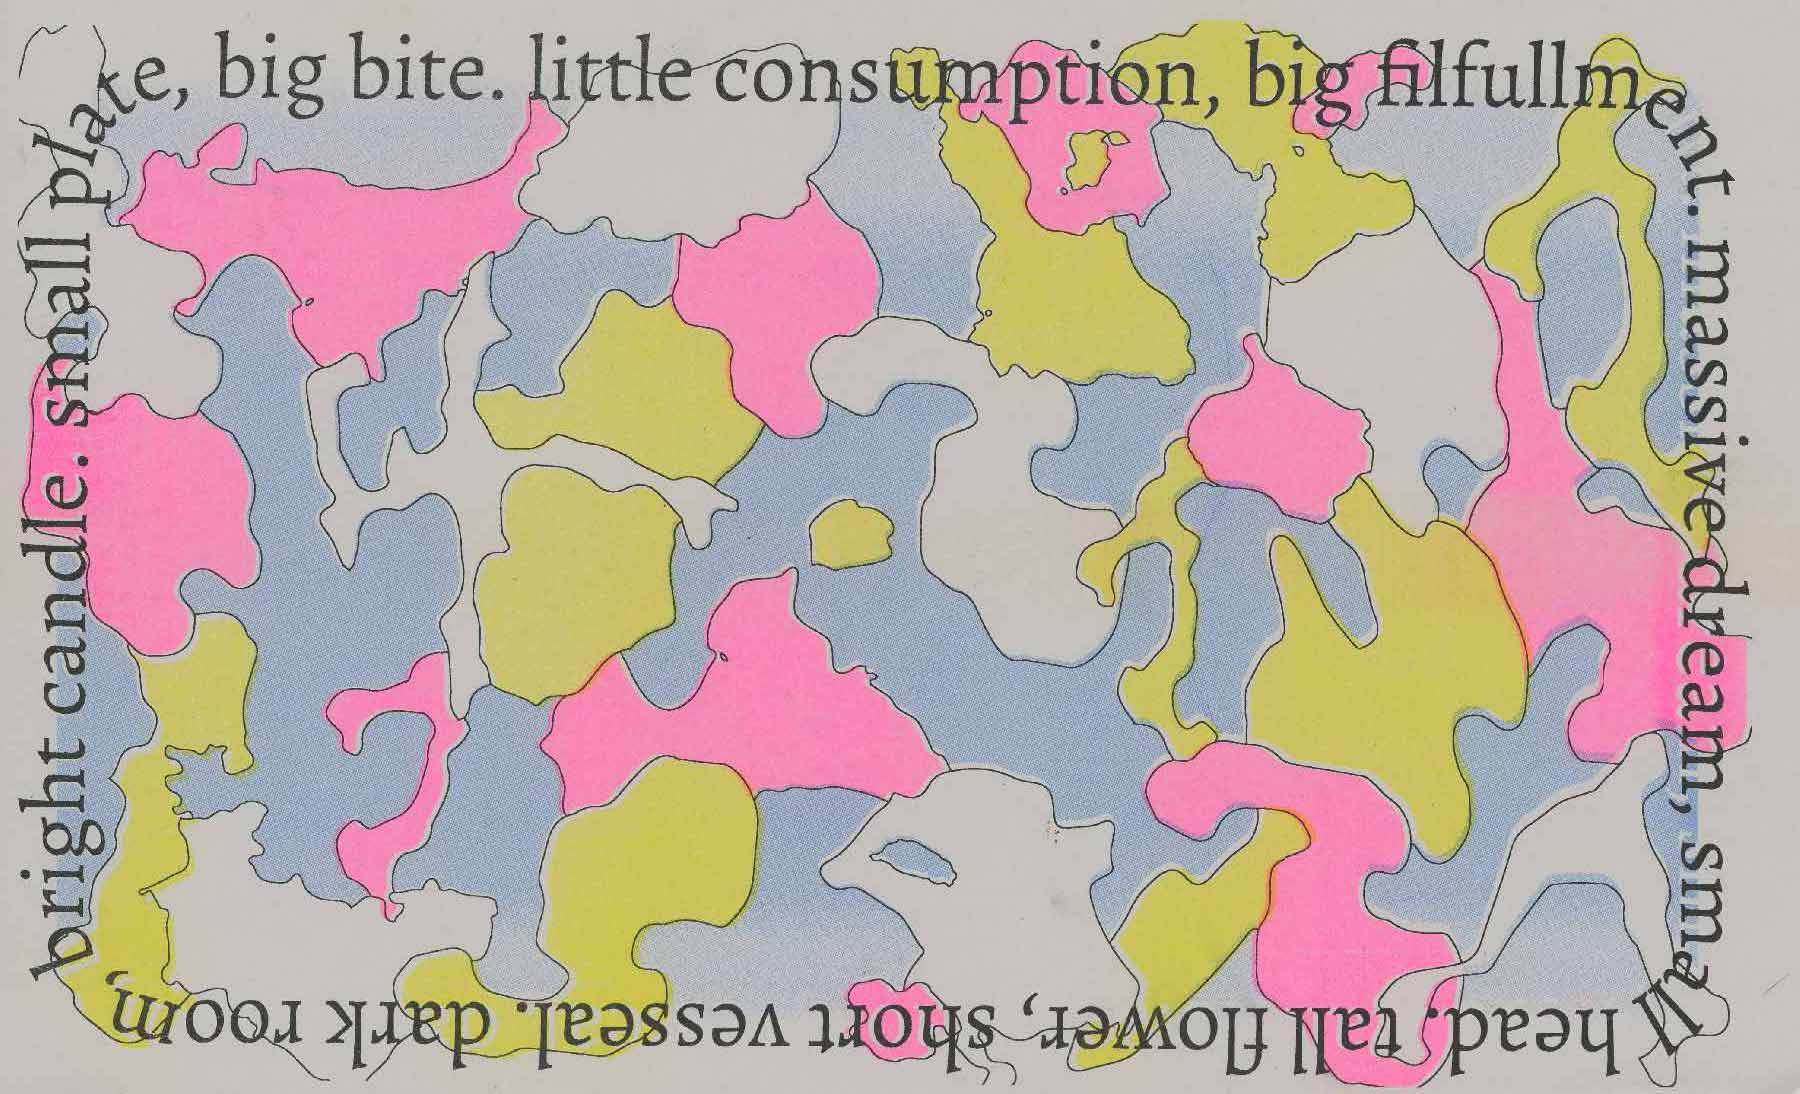 COMPLEMENT POP QUIZ (functions as wrapping paper),  risograph print